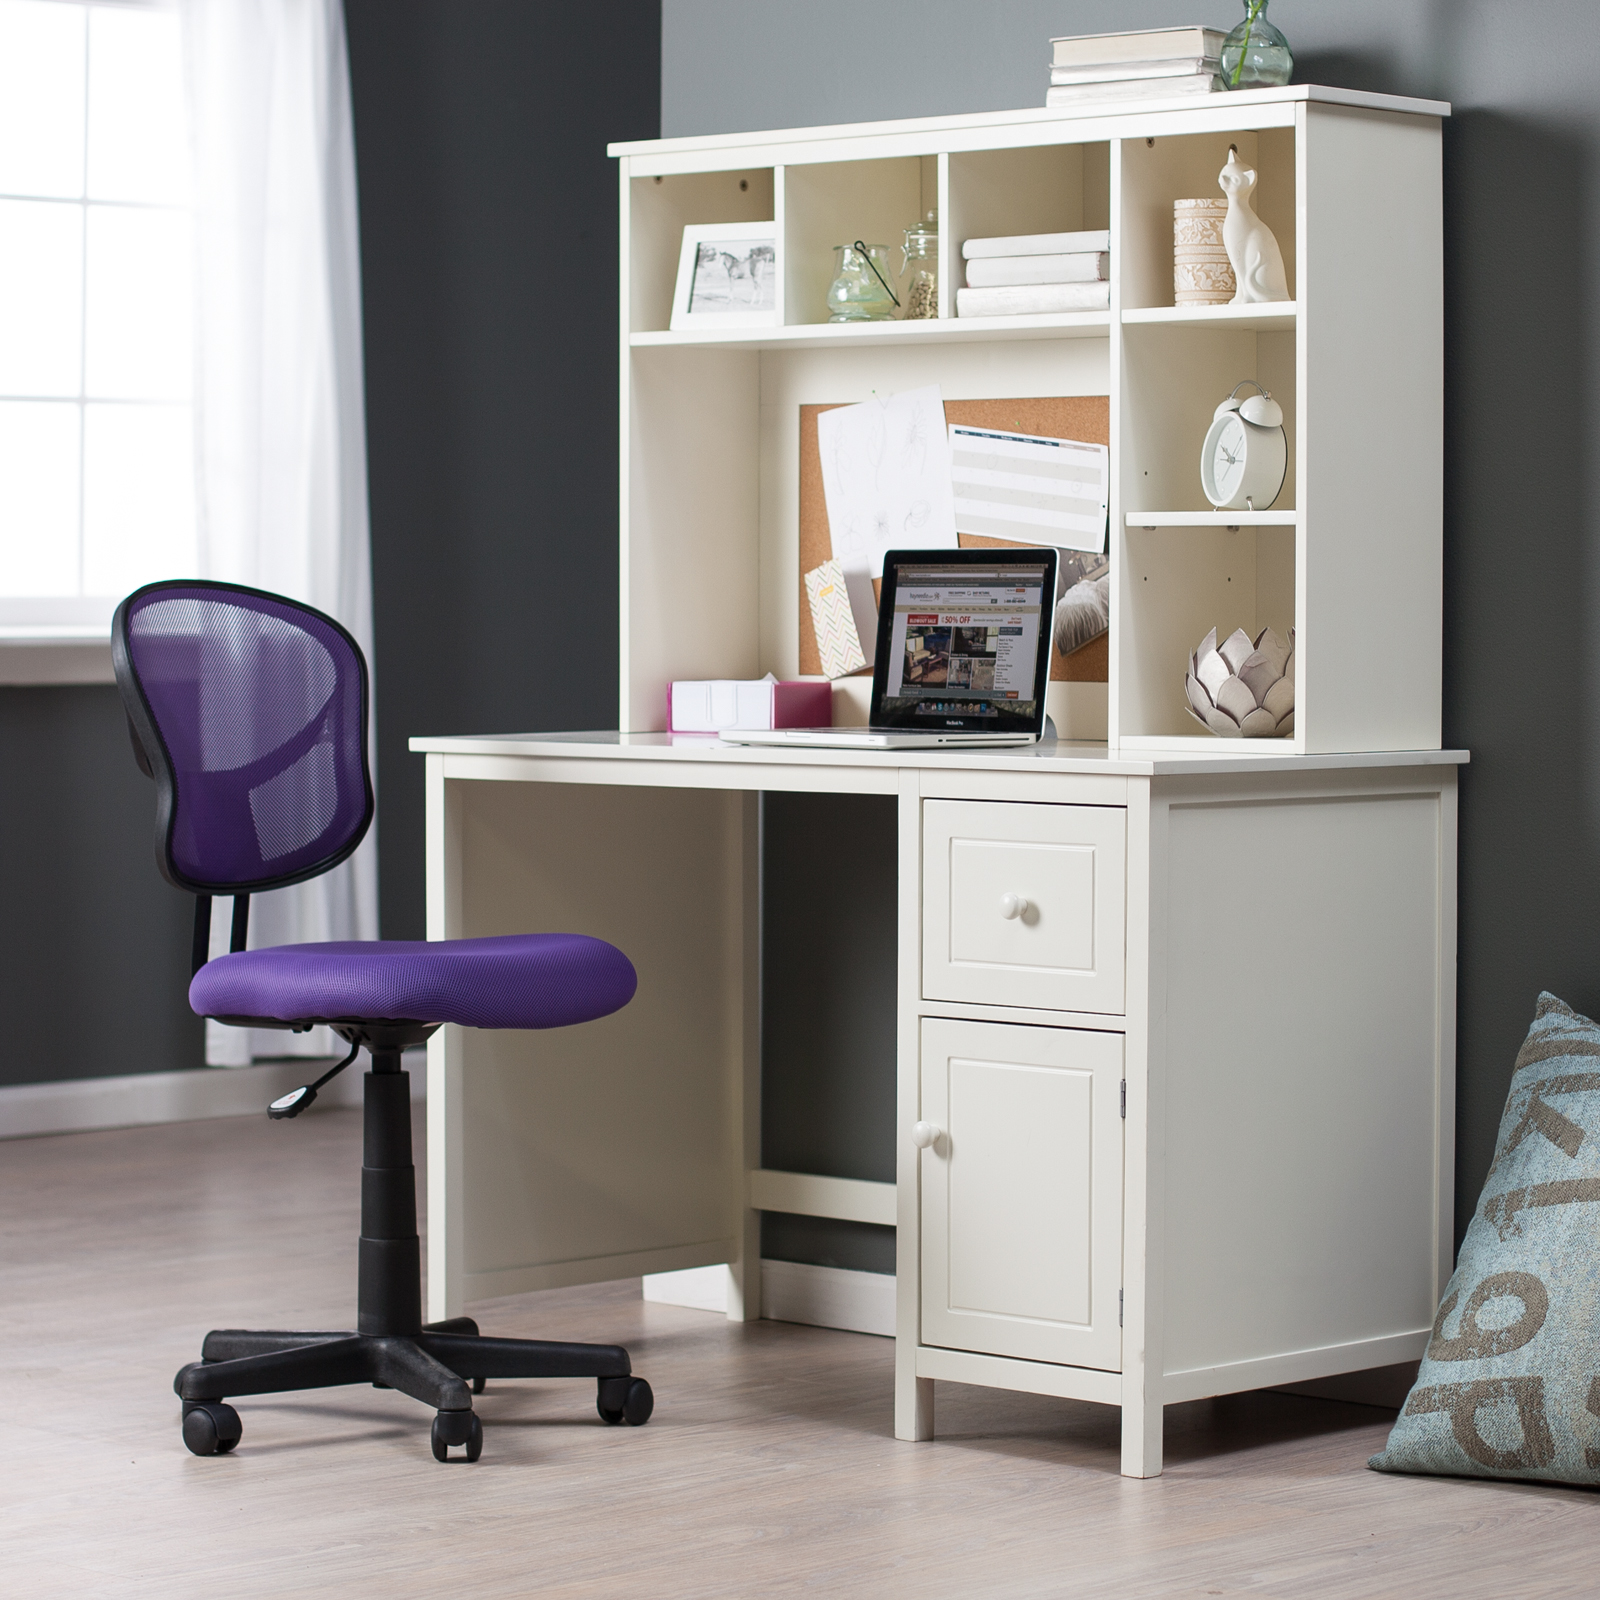 Corner Computer Desks with Hutch for Small Spaces 1600 x 1600